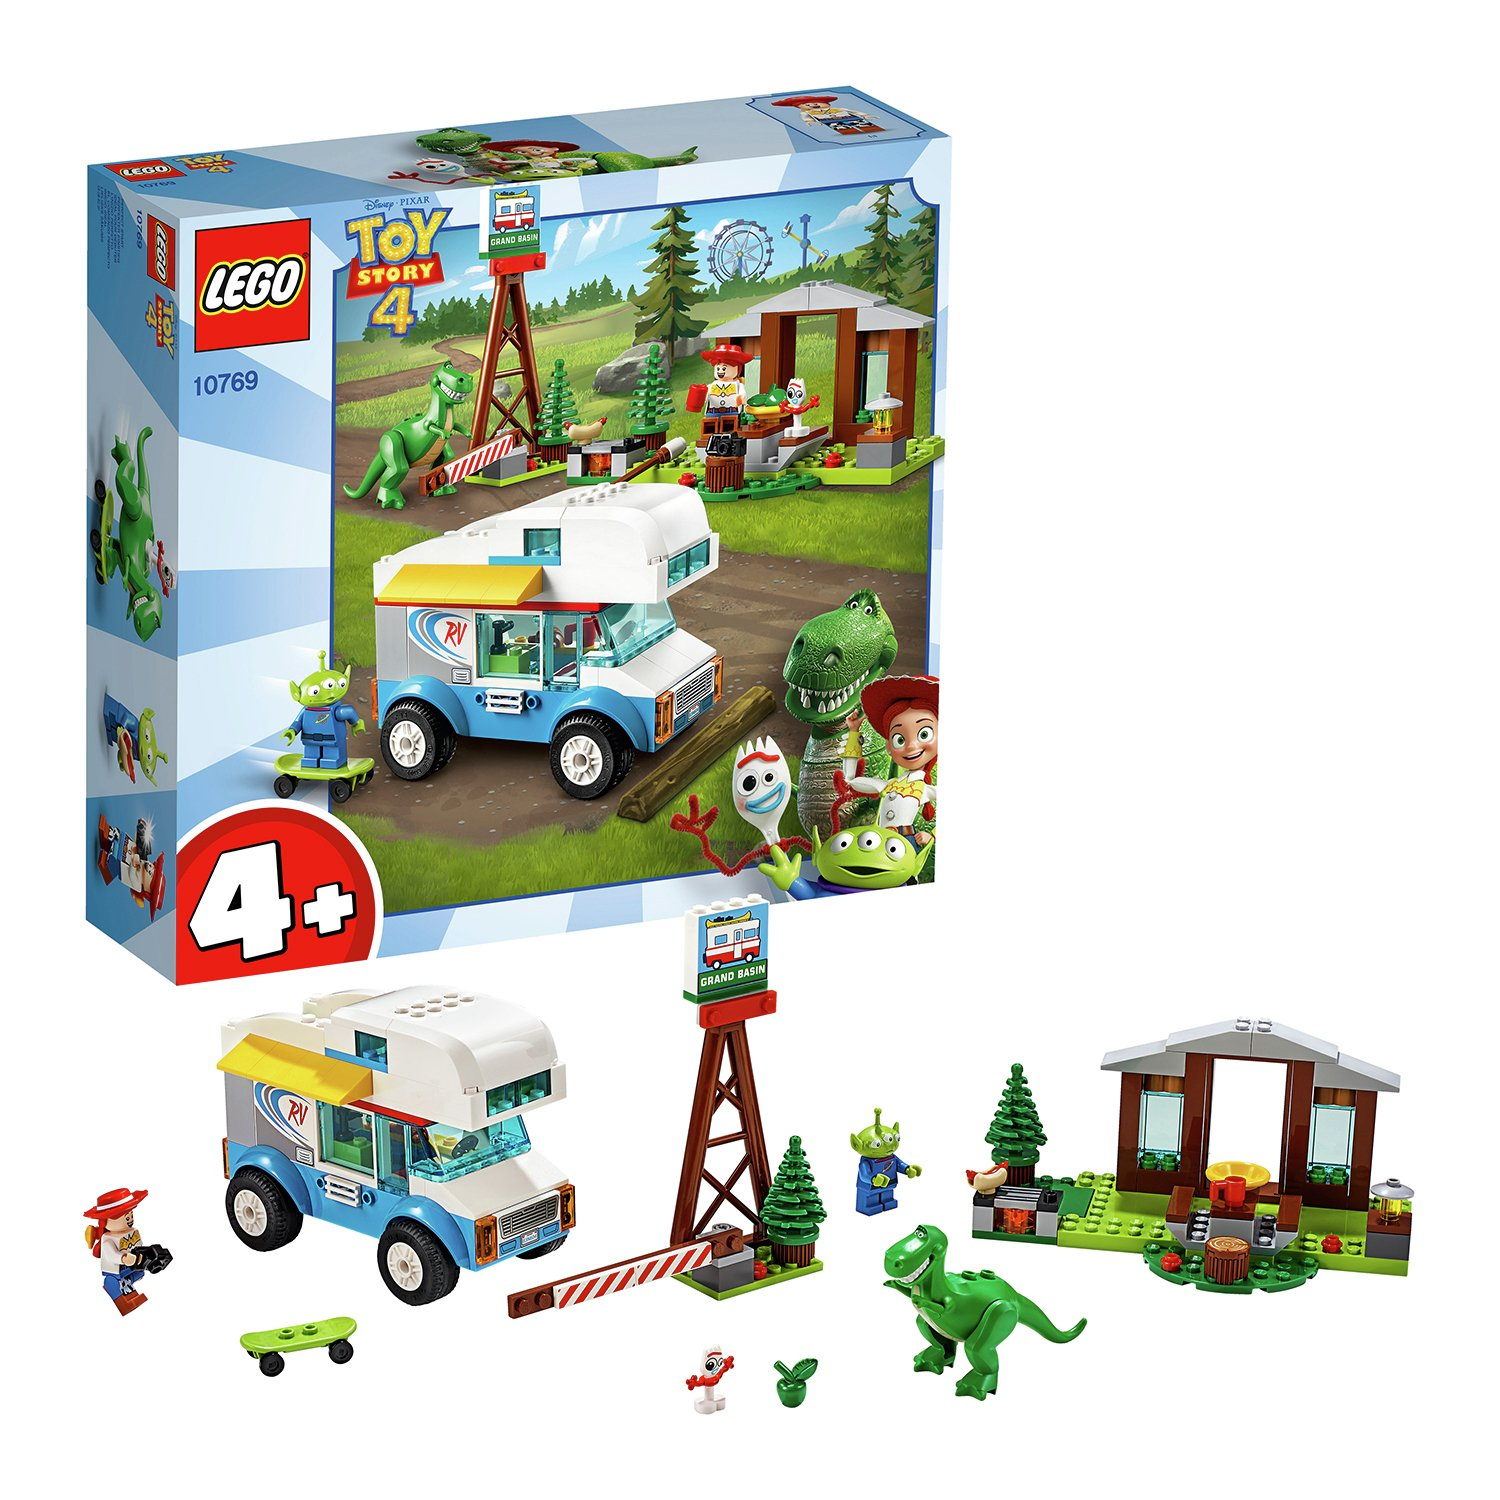 LEGO Toy Story 4: RV Vacation - 10767